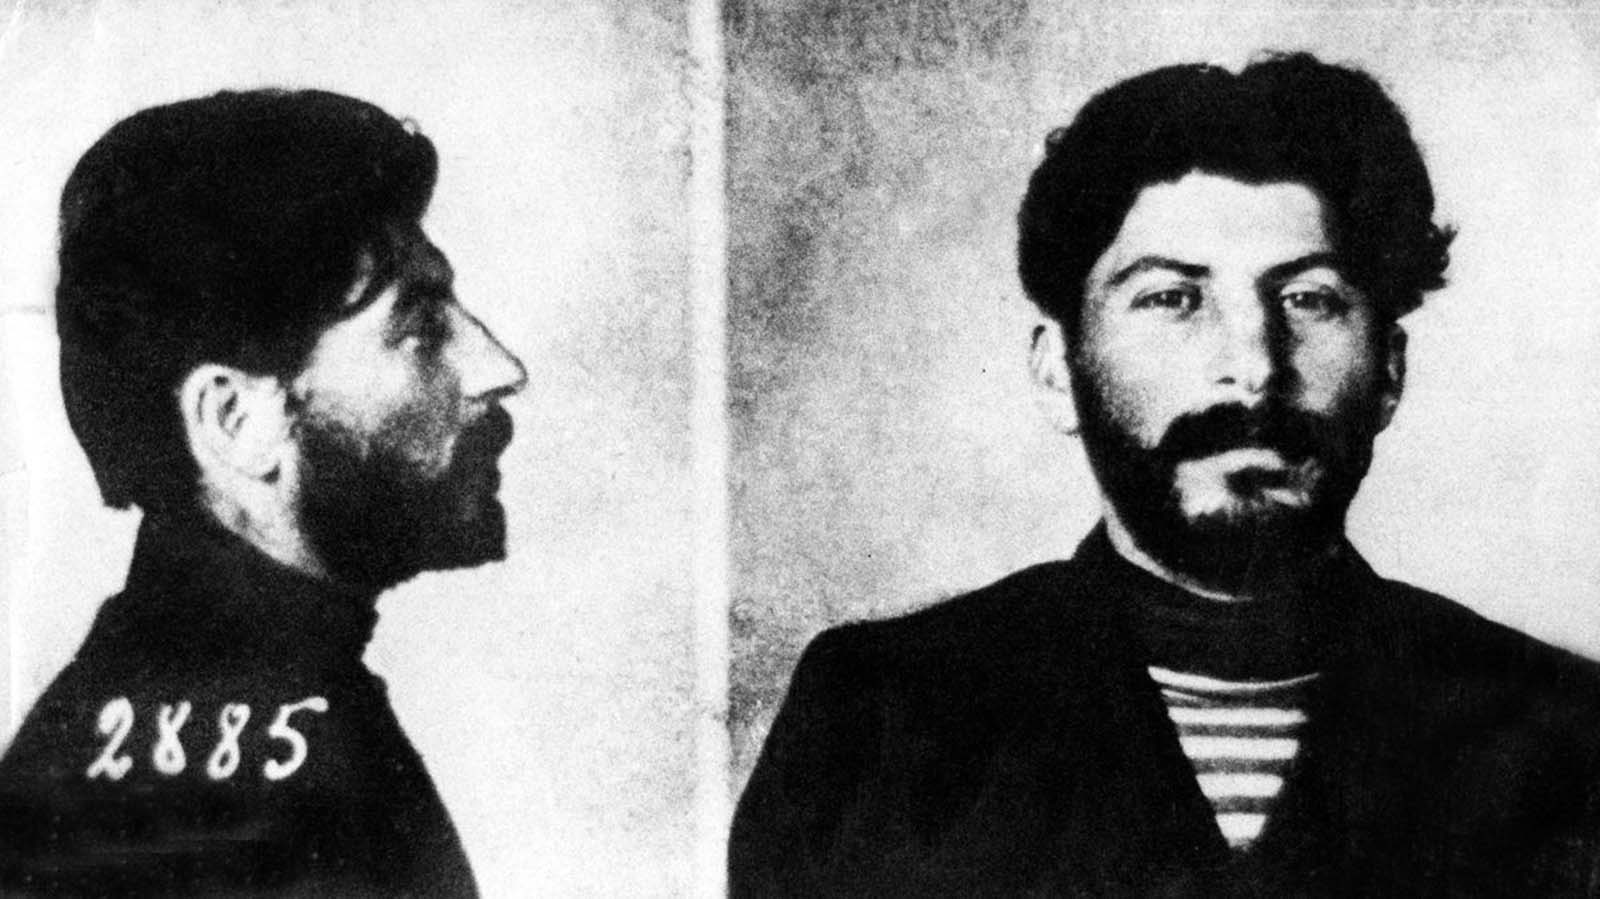 A mugshot of Stalin after an arrest. 1908.